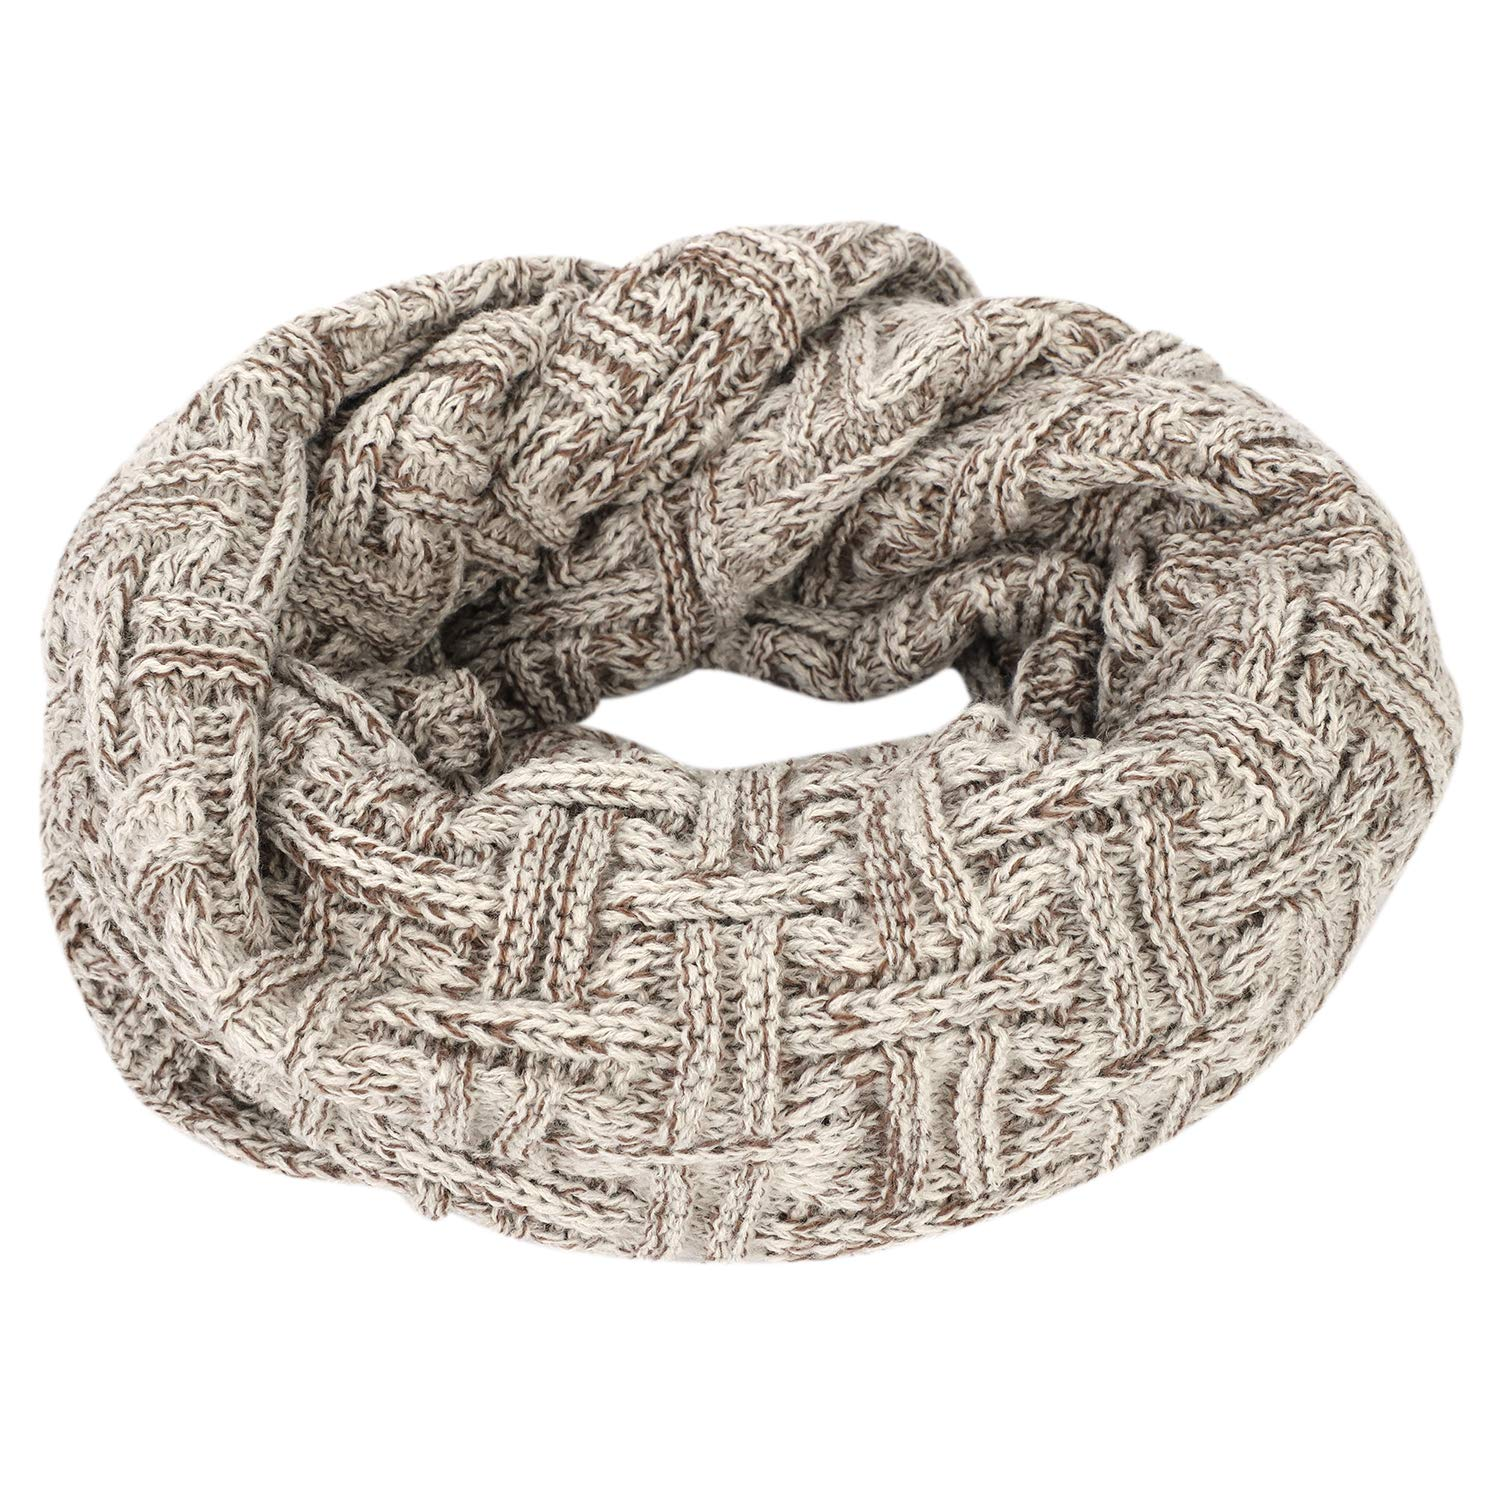 Beige Khaki Teens Youths Women Men Stylish Knit Infinity Scarf Allmatch Circle Loop Scarf Versatile Shawl Wrap Fashion Scarves